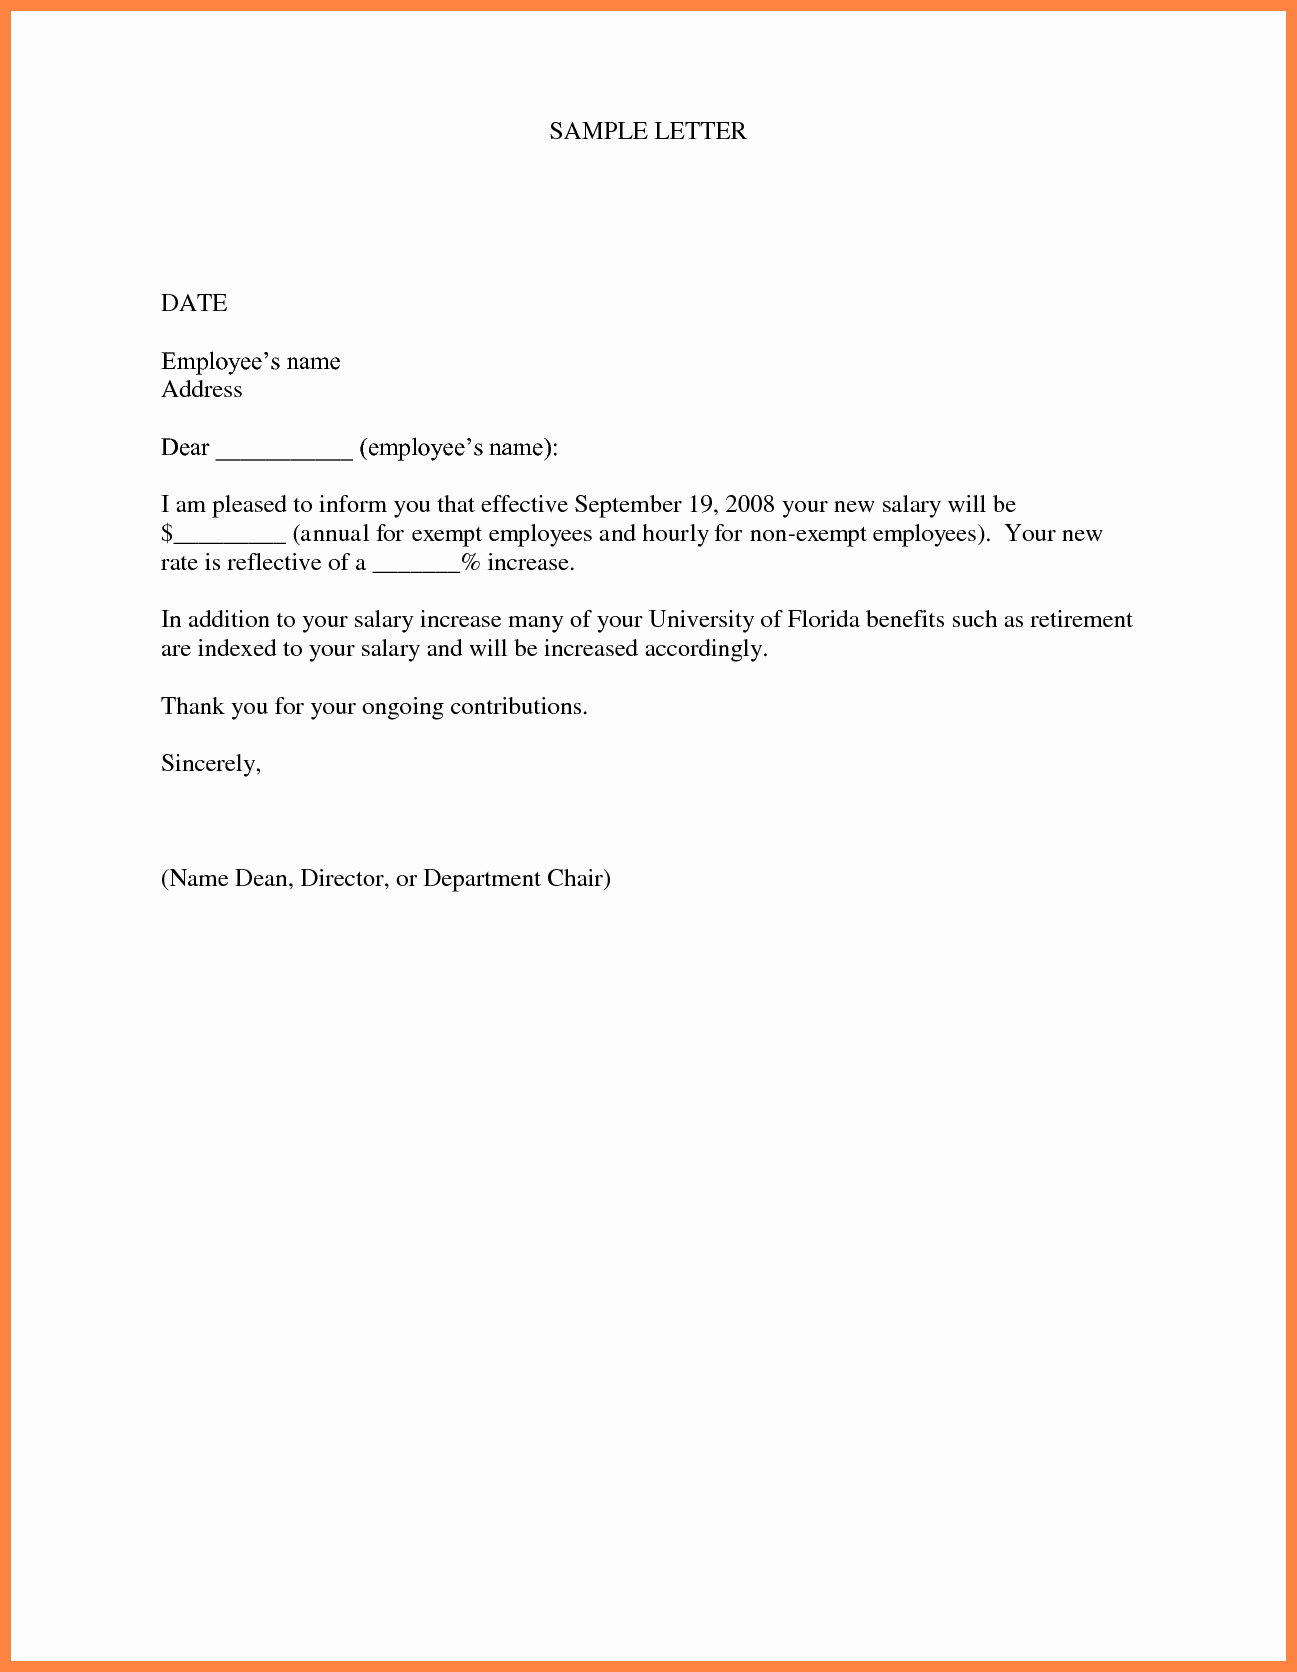 Sample Pay Increase Letter to Employee Inspirational 5 Sample Salary Increase Letter to Employer